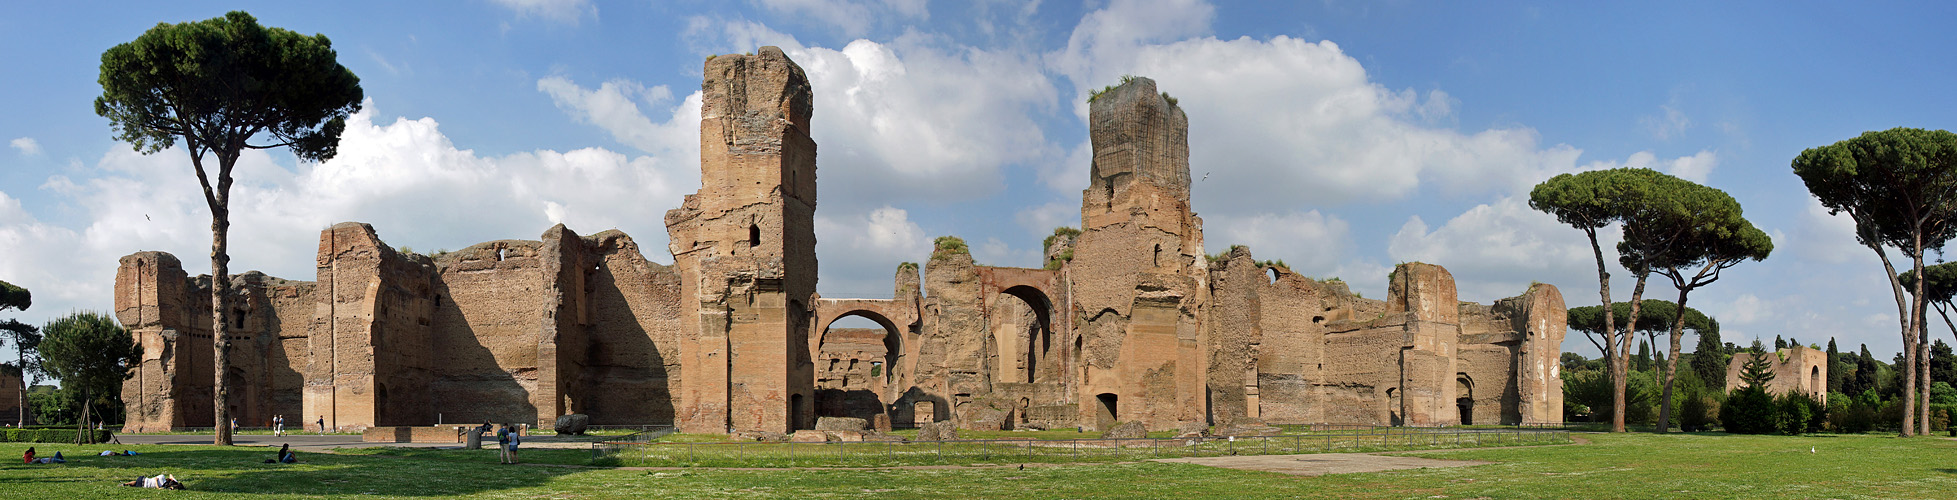 Photo panoramique des thermes de Caracalla